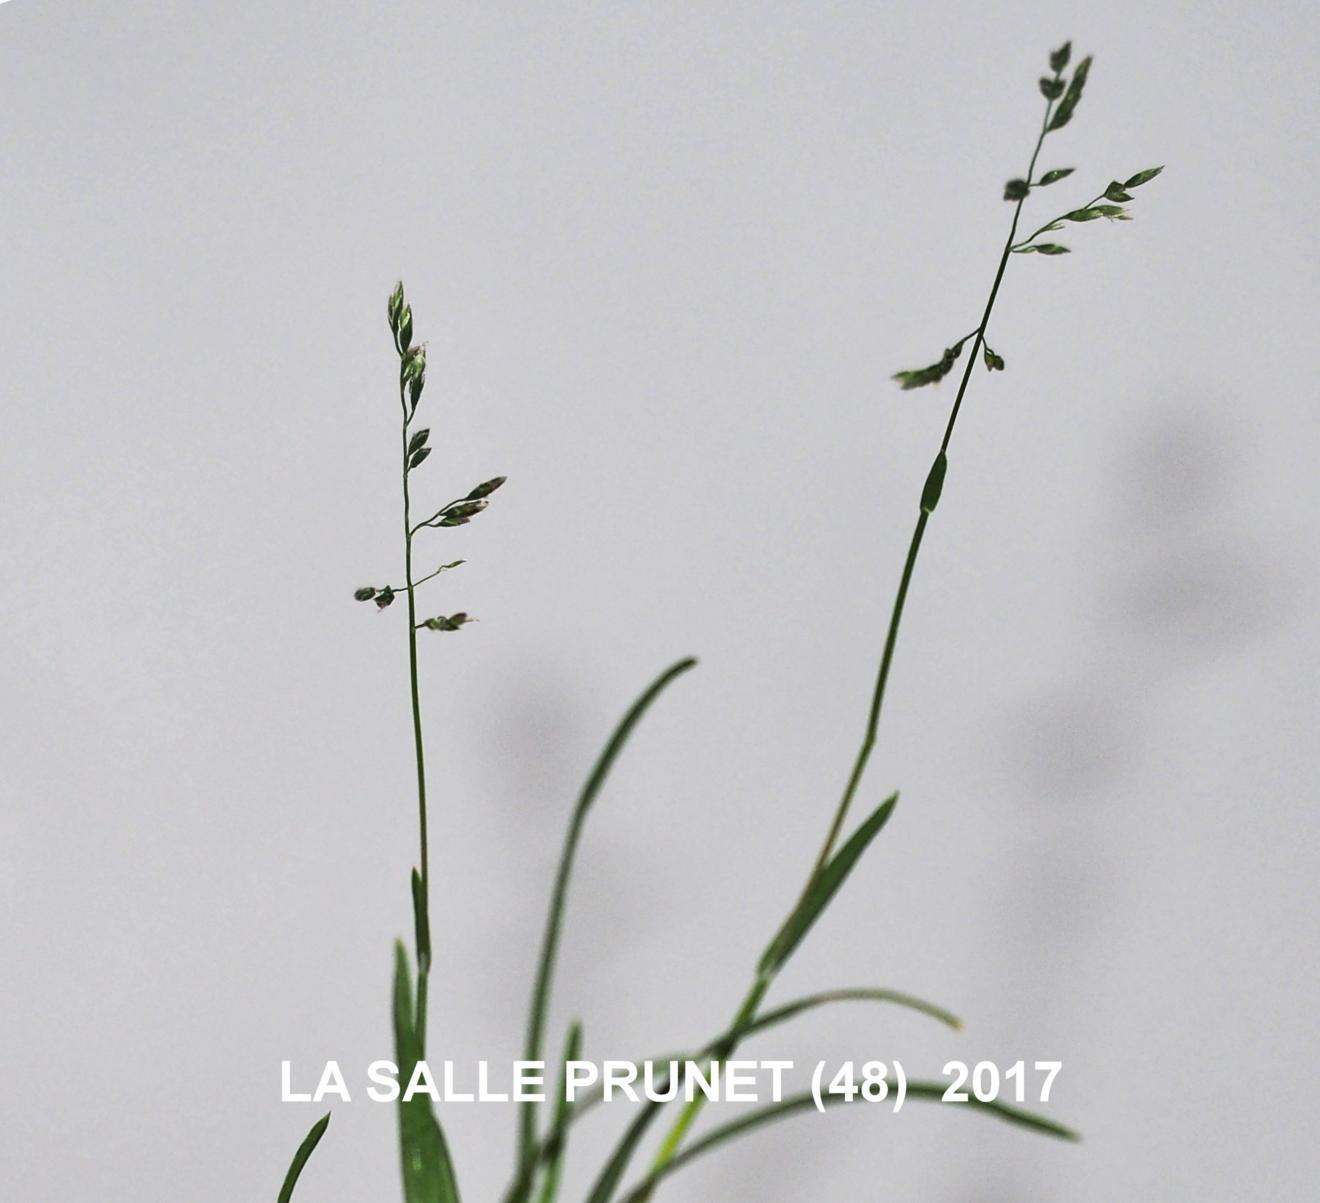 Meadow-grass, Annual